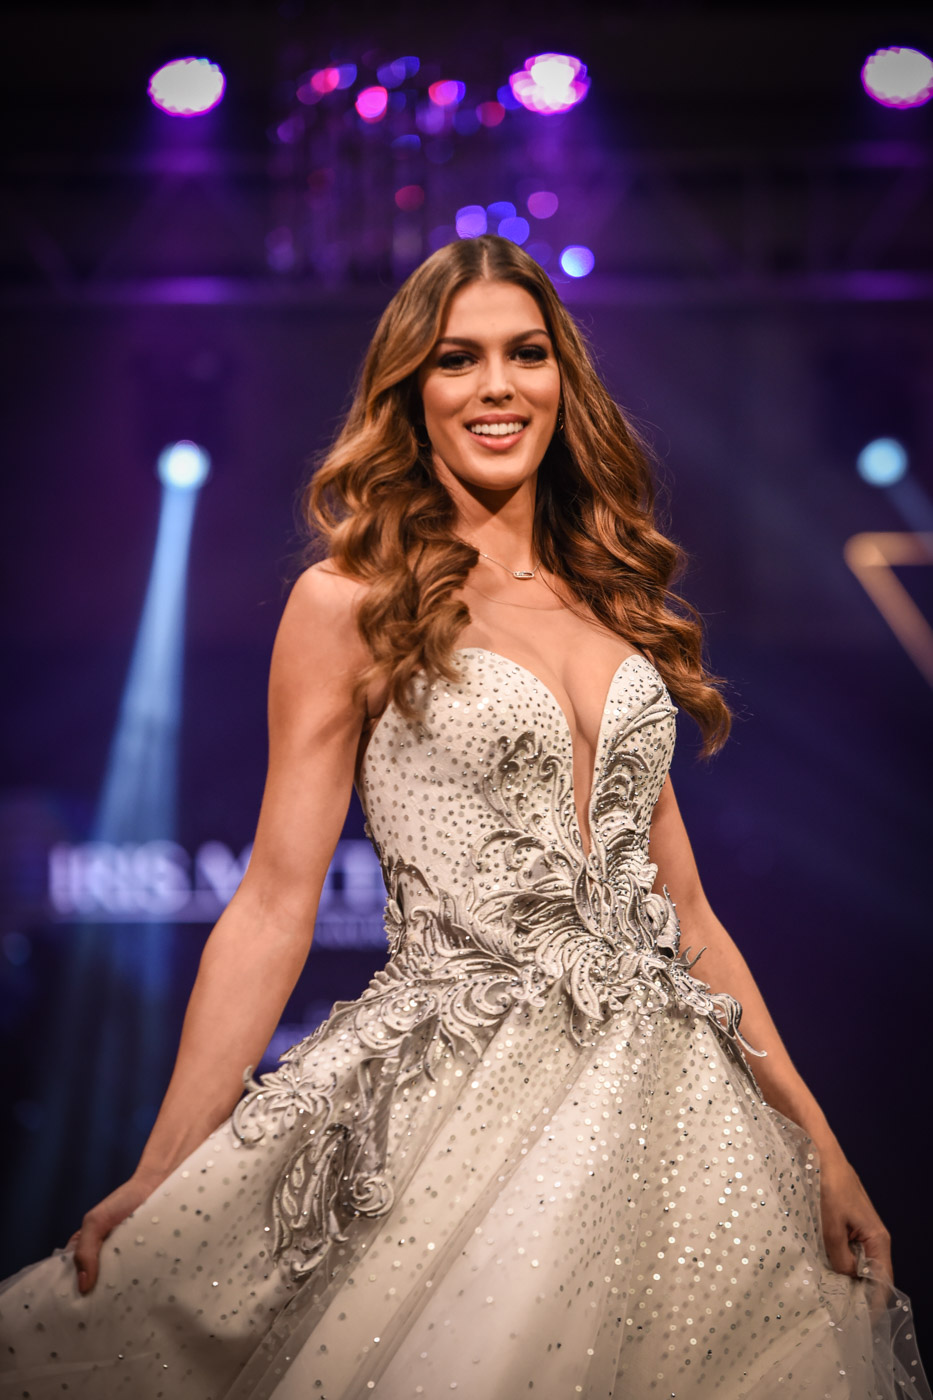 Miss Universe 2016 Iris Mittenaere in a creation by Albert Andrada